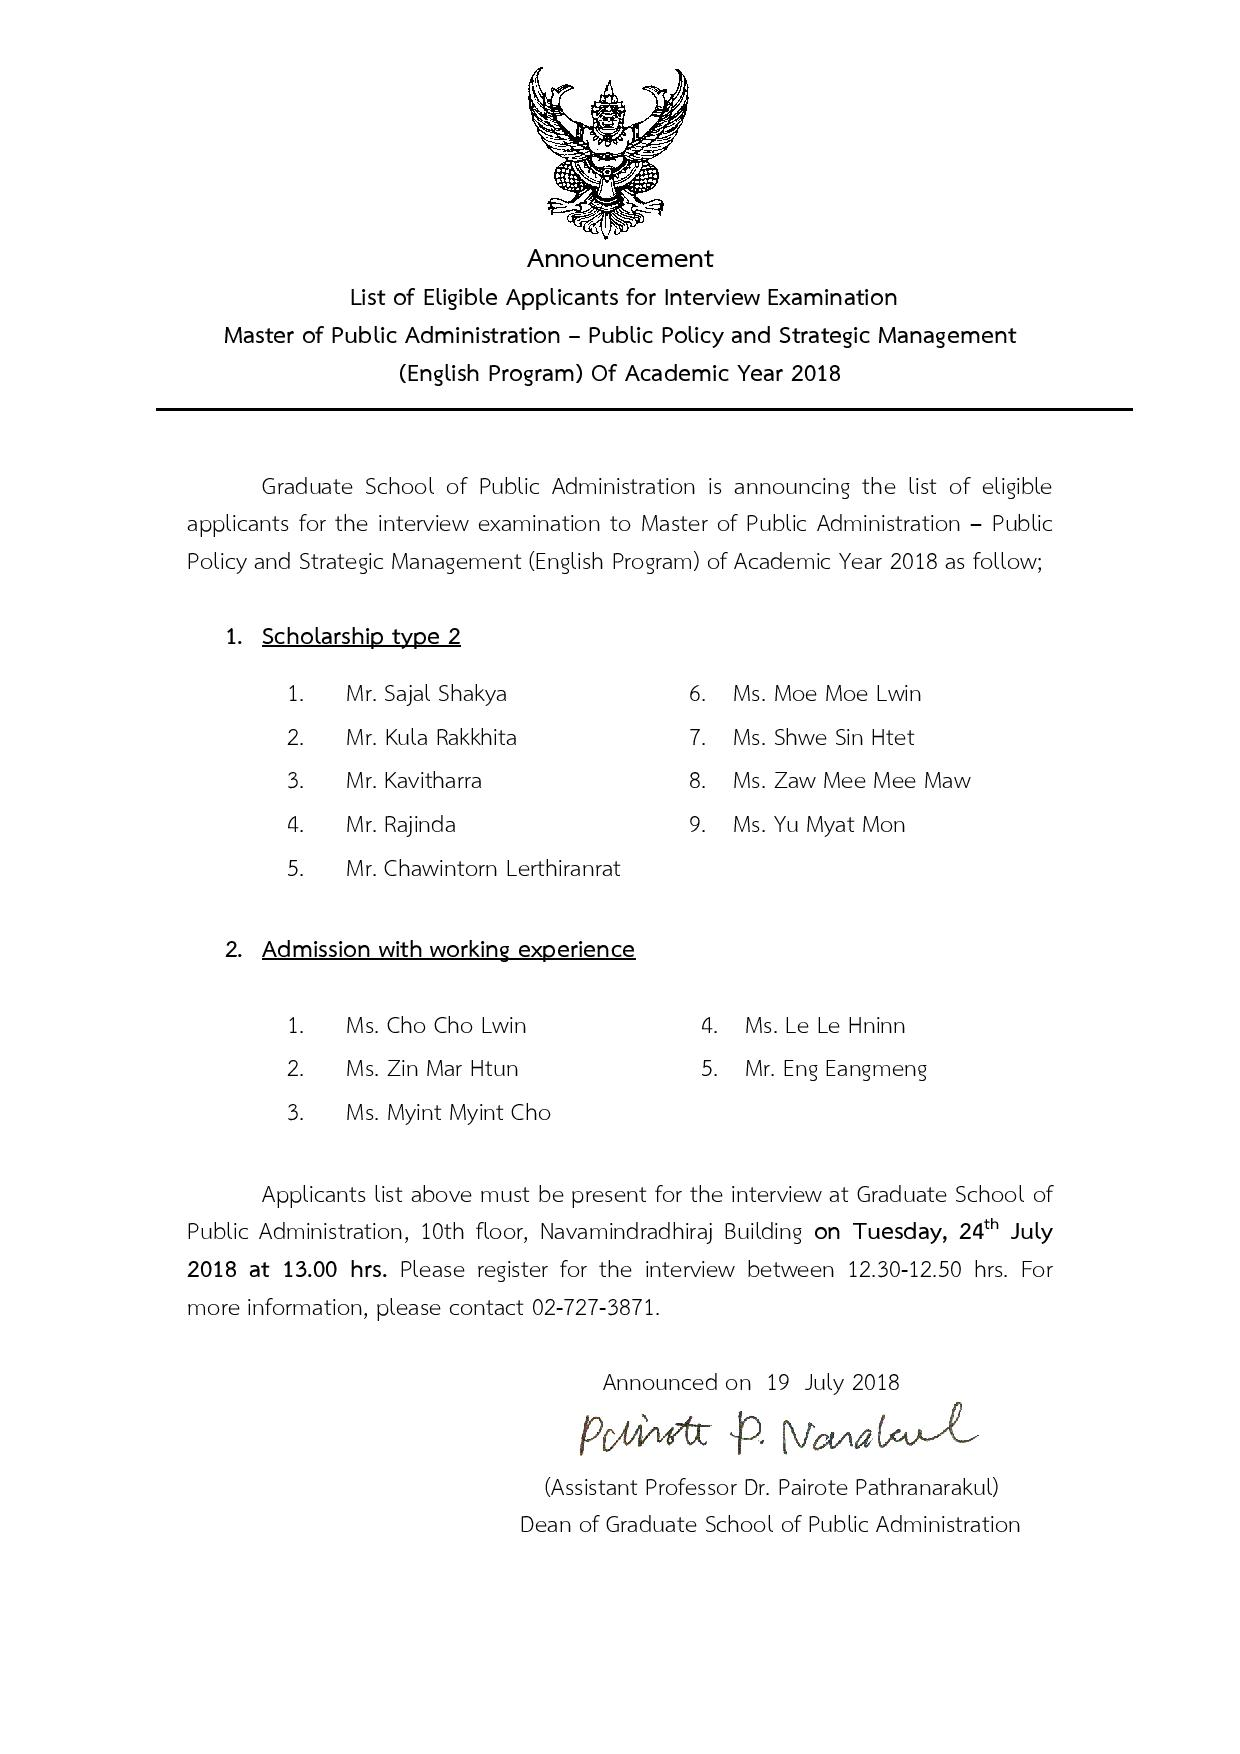 List of Eligible Application for Interview Examination MPA (English Program)